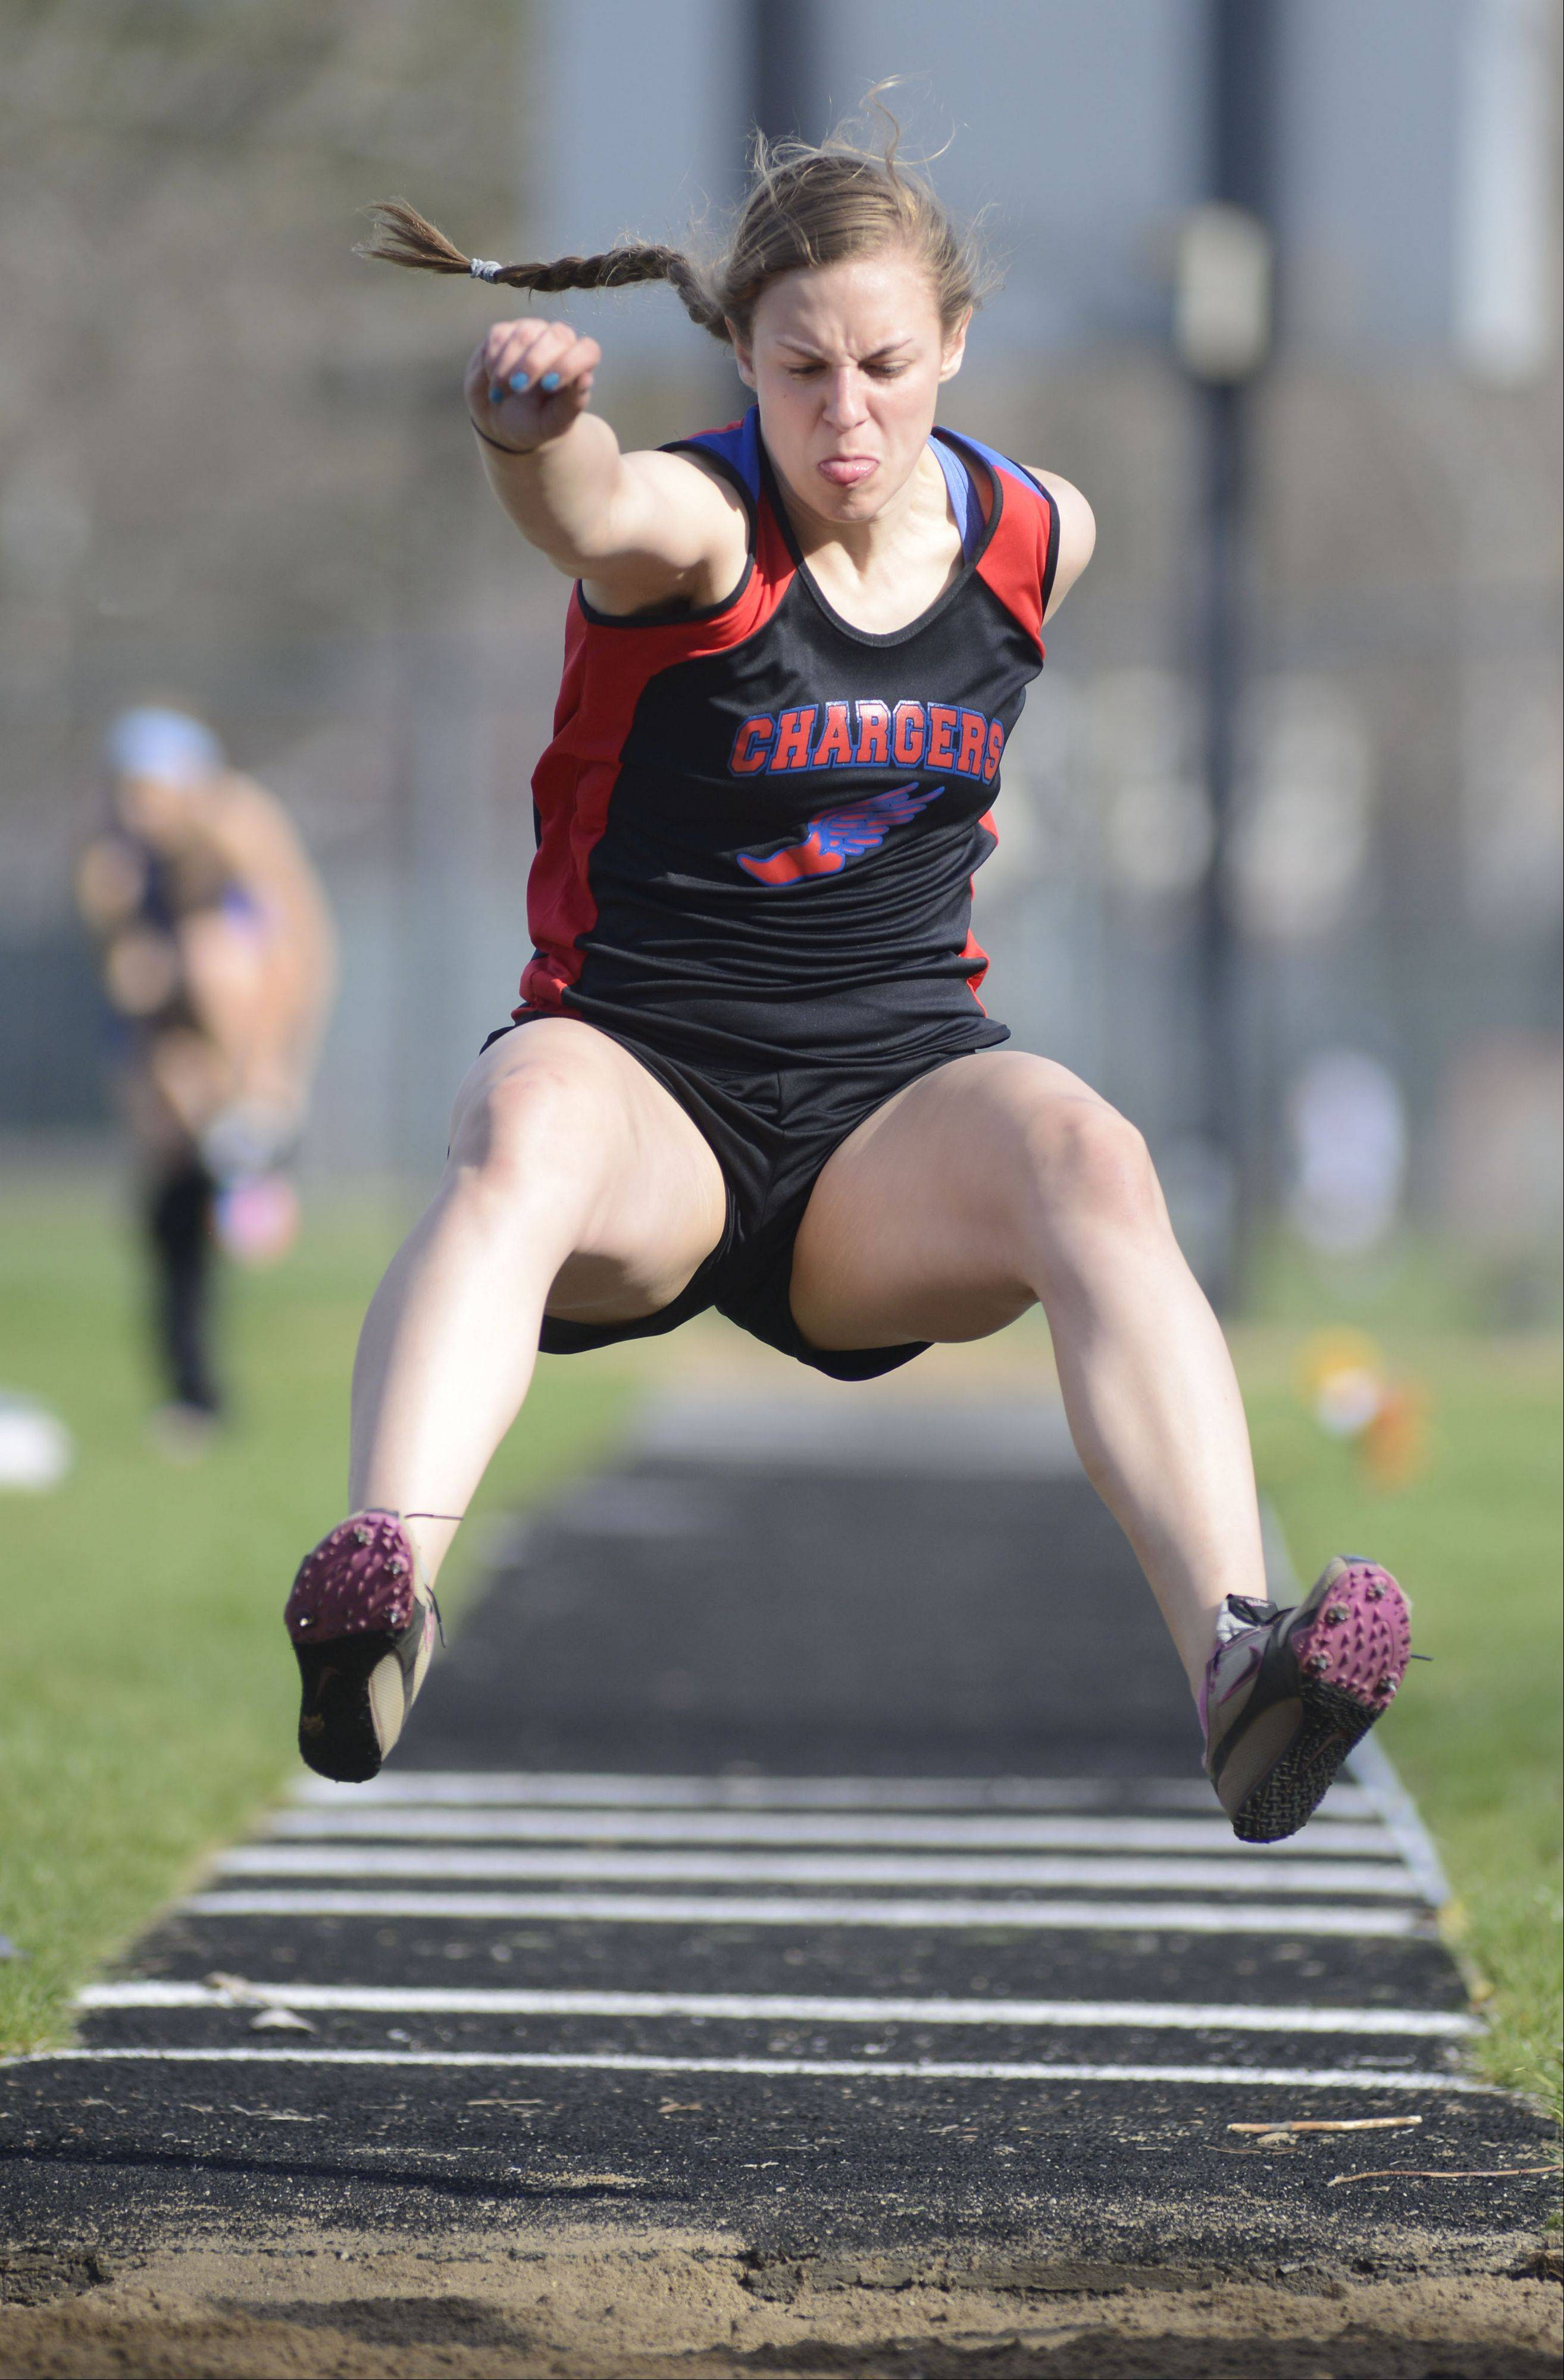 Dundee-Crown's Claire Blume in the long jump at the Kane County Invitational track in Geneva meet on Friday, April 26.